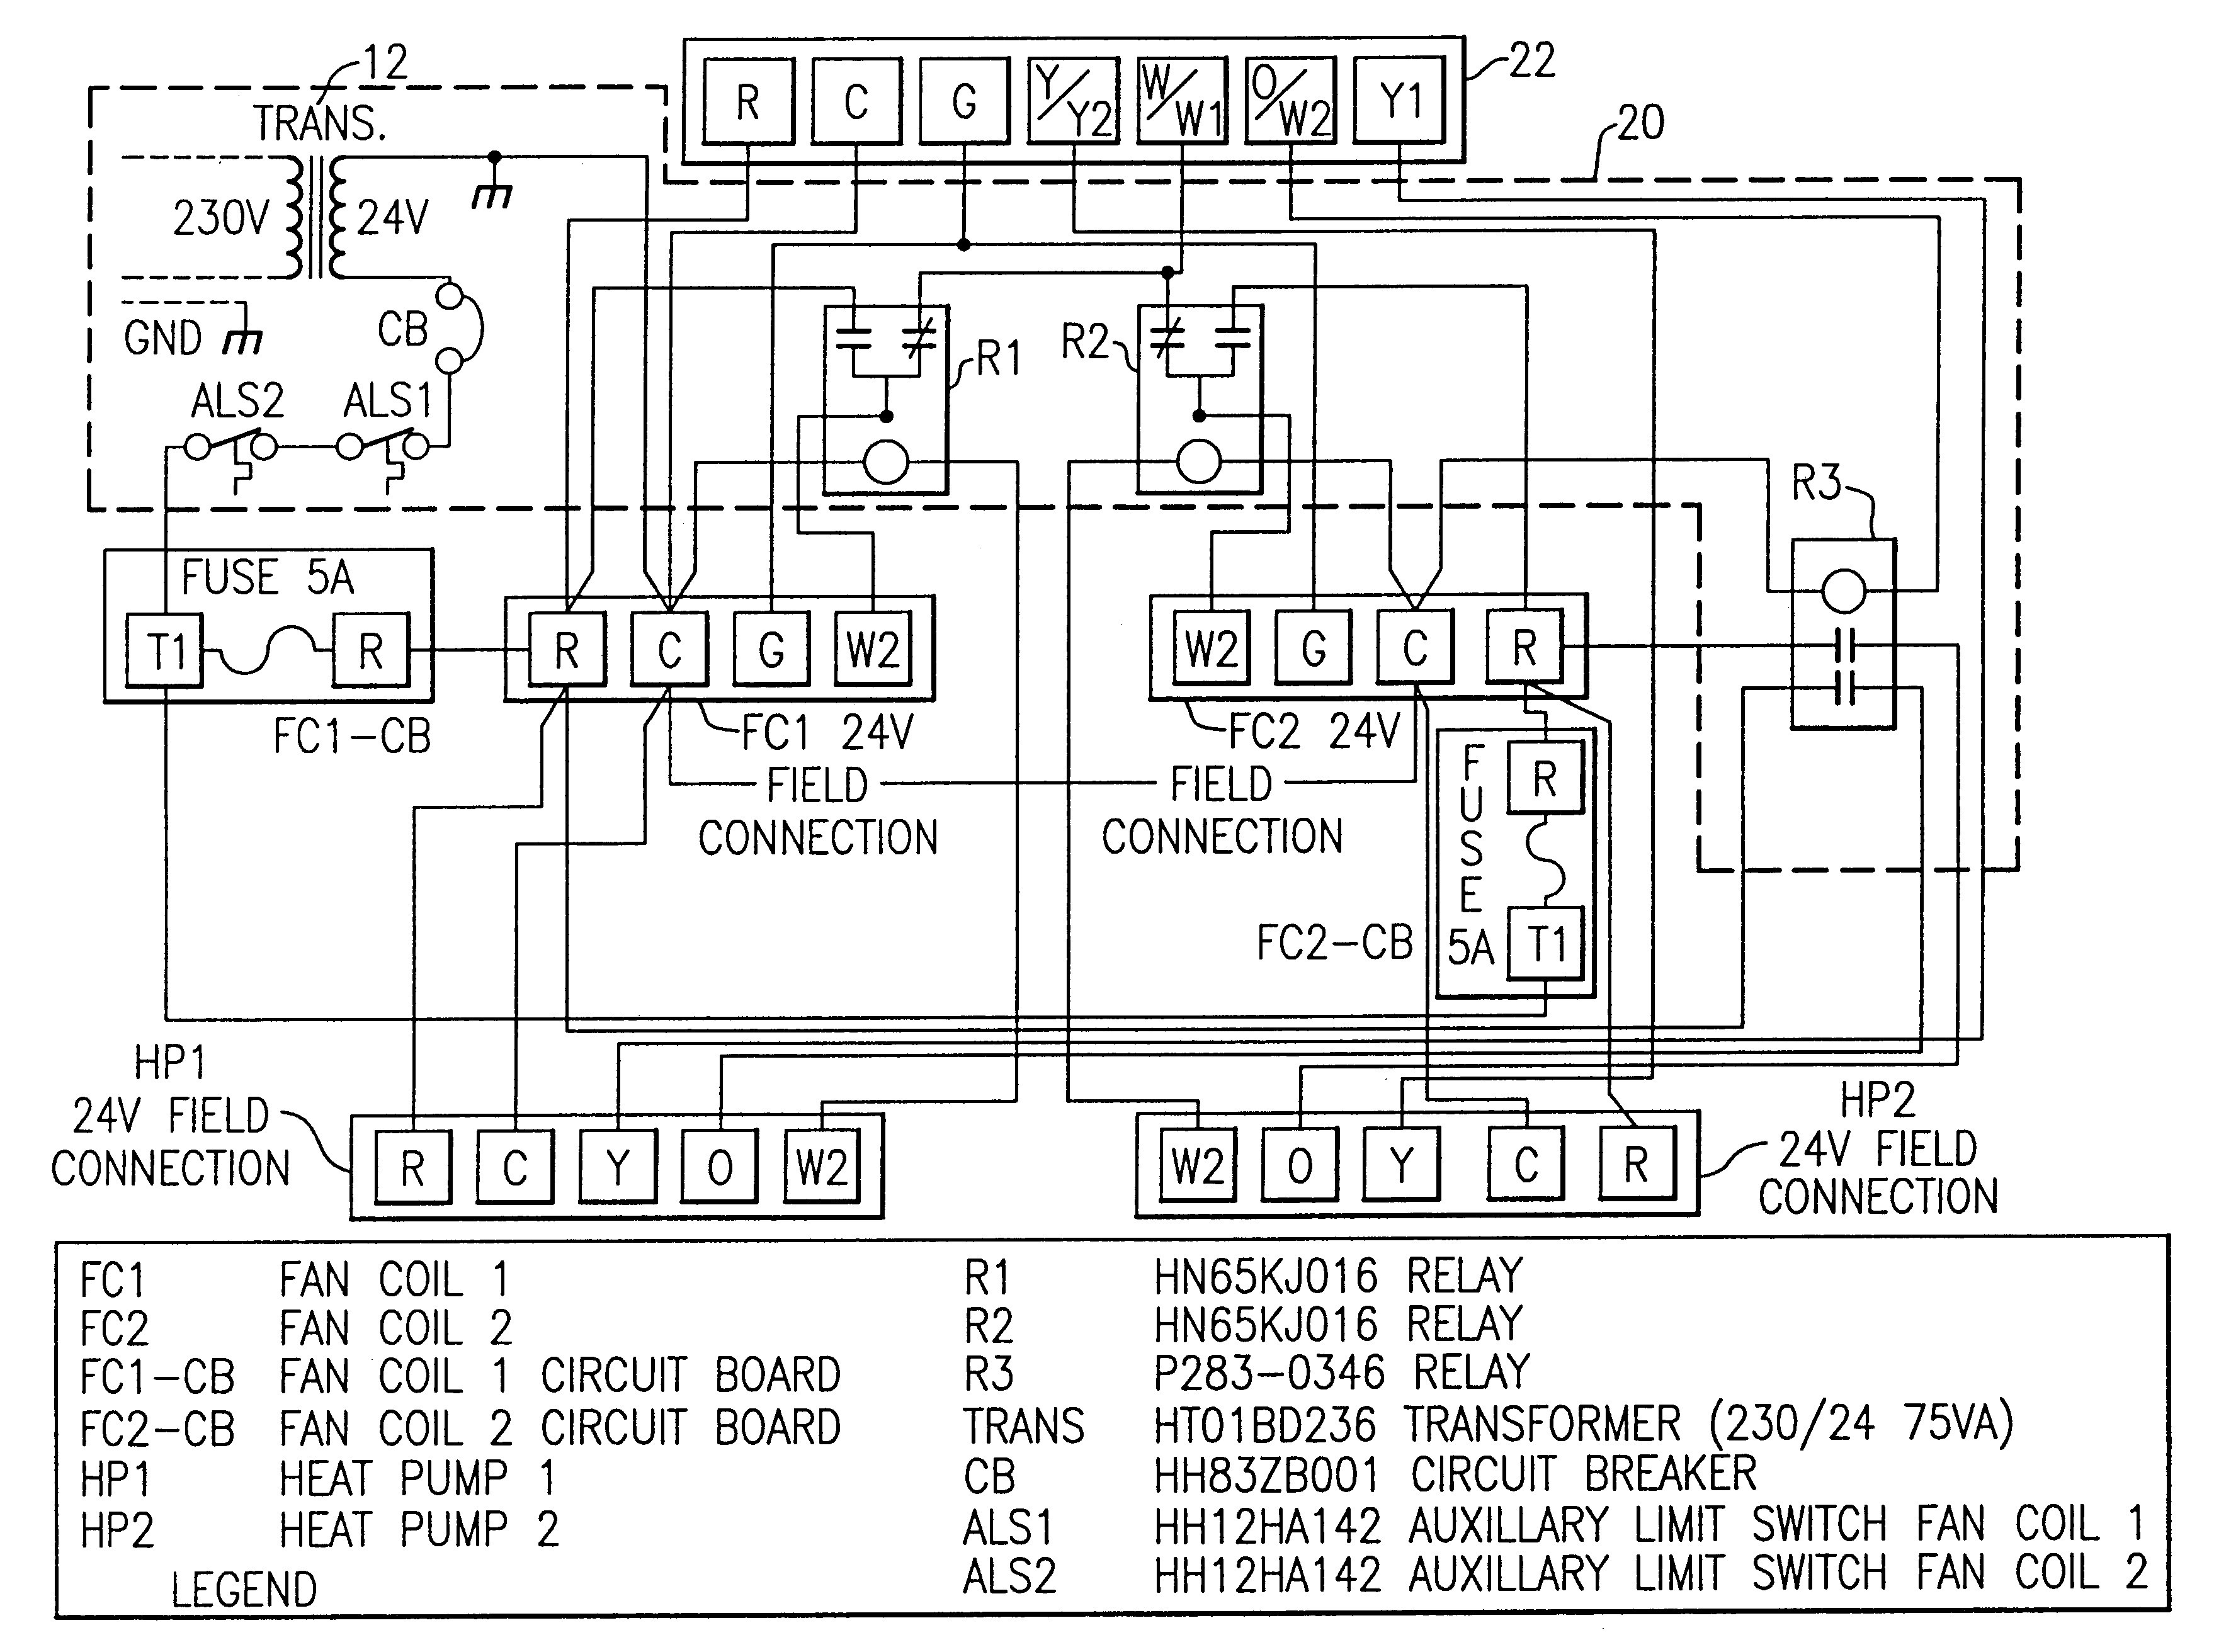 lennox wiring diagrams star delta diagram control circuit york rooftop unit collection |